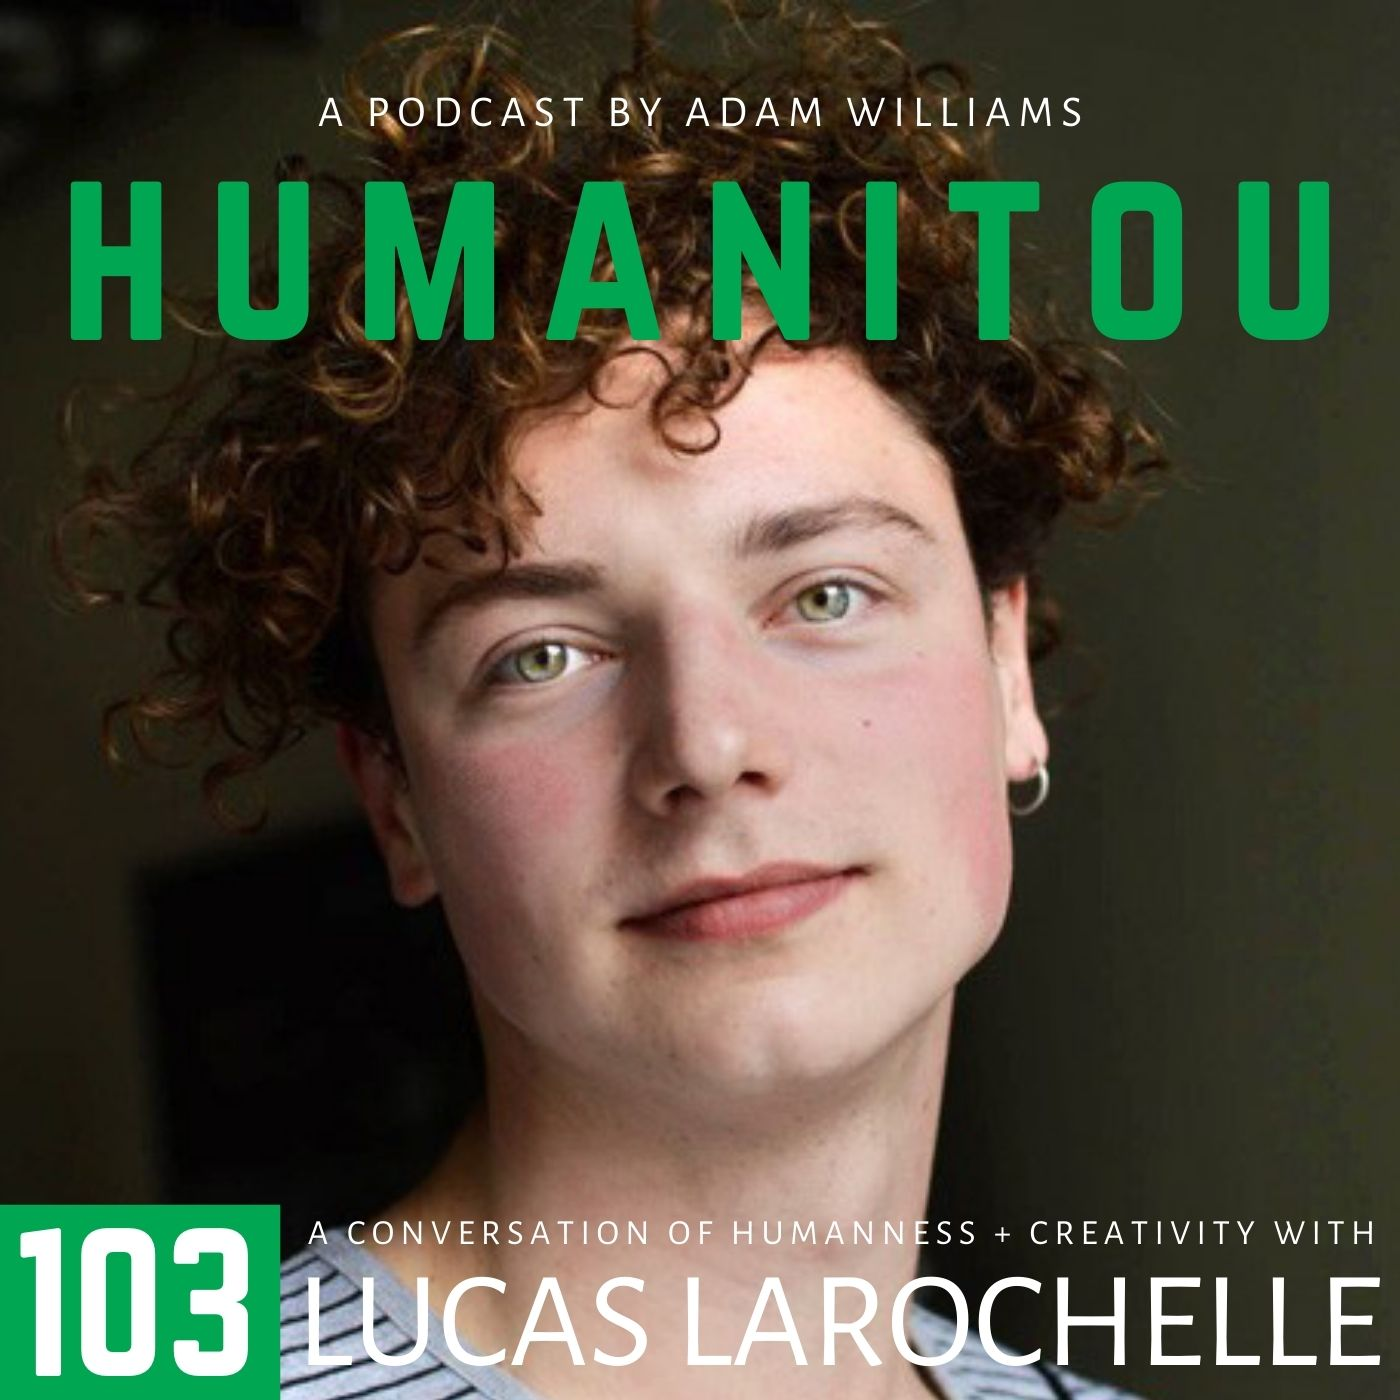 103: Lucas LaRochelle, designer and founder of Queering the Map, on the magic of archiving queer experience, and anonymity, love and truth, data privacy and A.I.